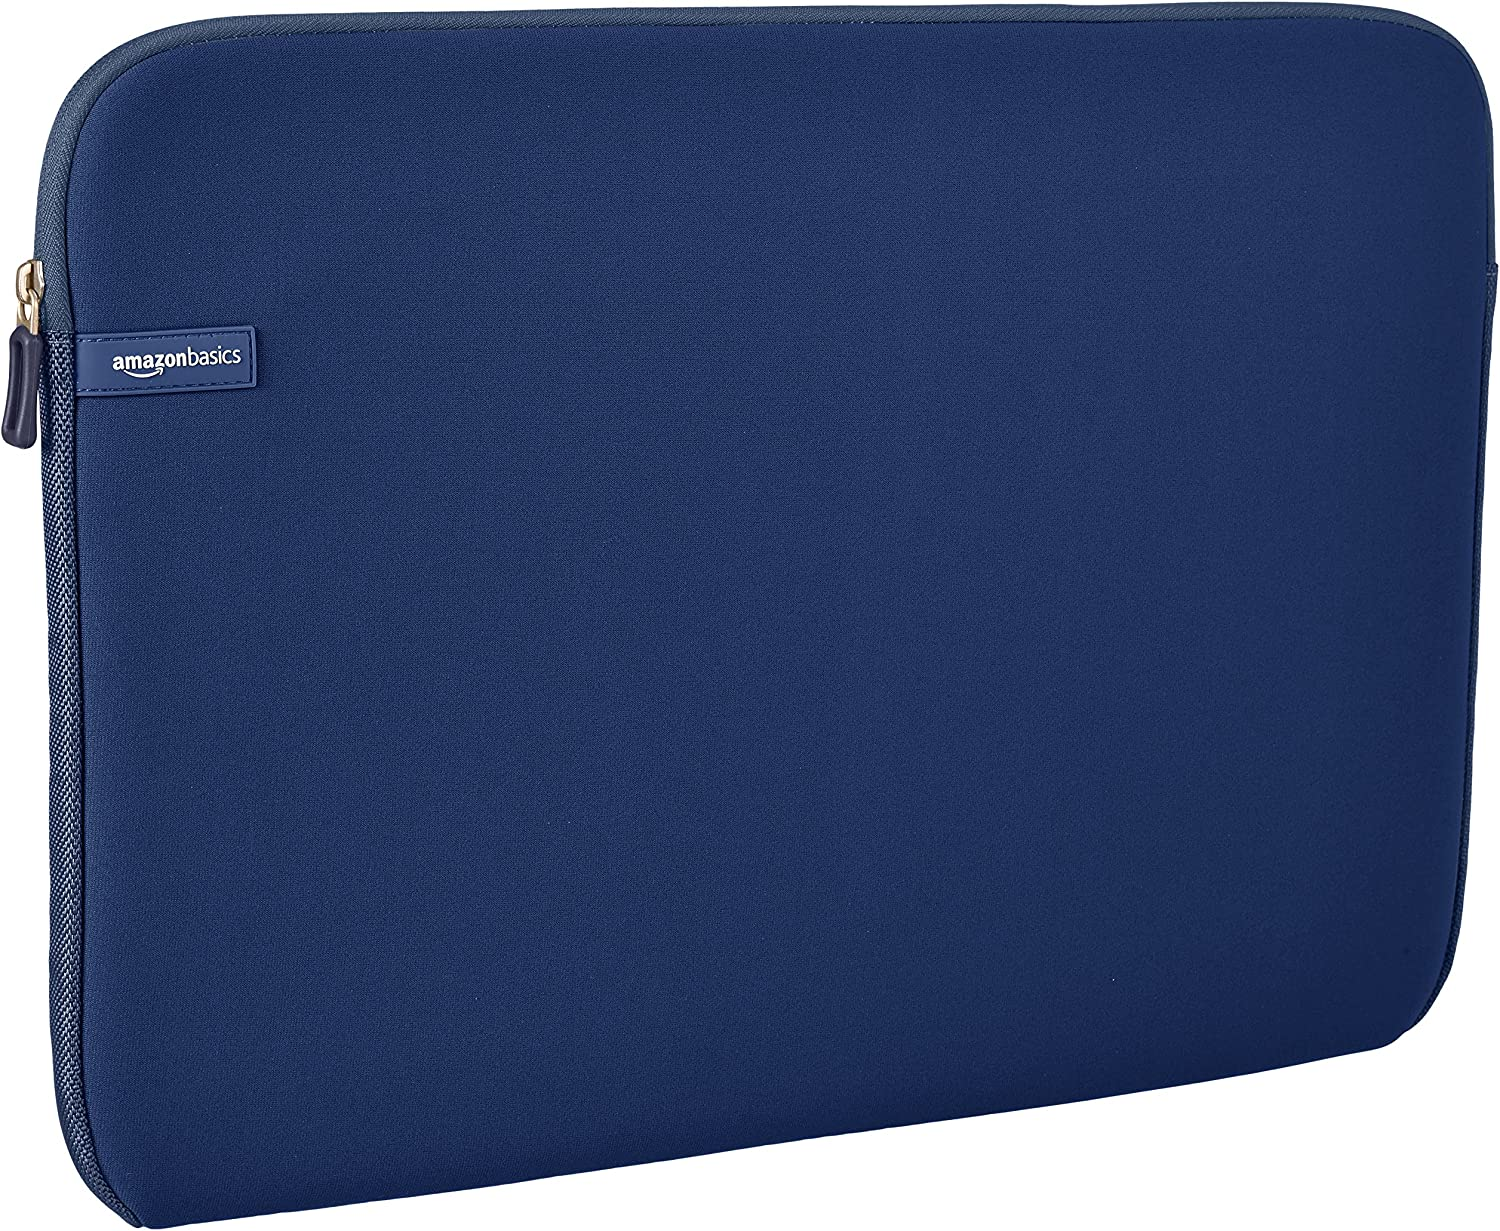 AmazonBasics 17.3-Inch Laptop Sleeve - Navy